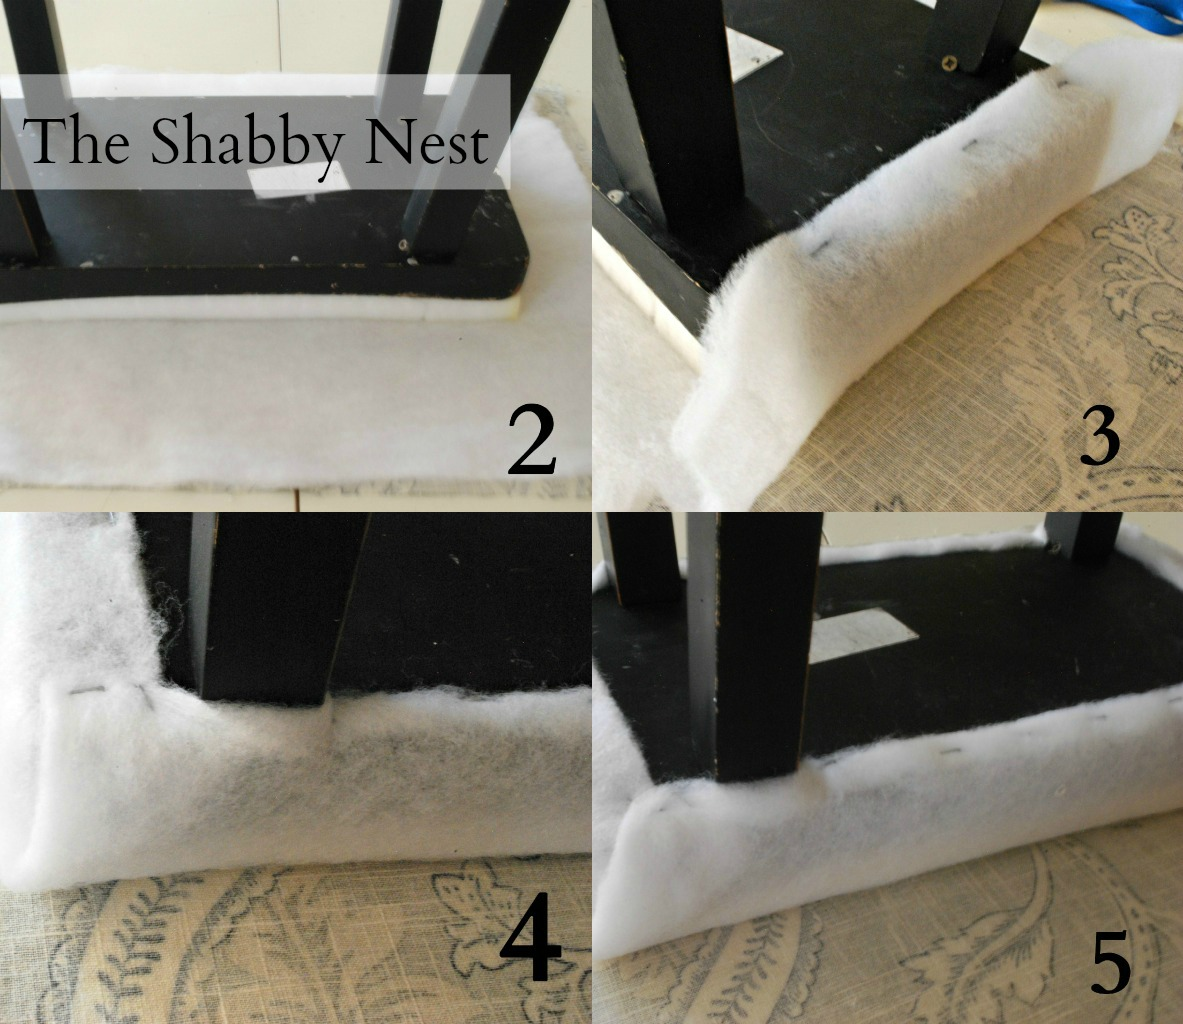 Repeat steps 2 and 3 with fabric. Make sure and pull the fabric tight to  avoid ripples. When you staple the fabric around the legs, try to get the  staples ... - The Shabby Nest: How To Upholster Barstools And Studio 5~